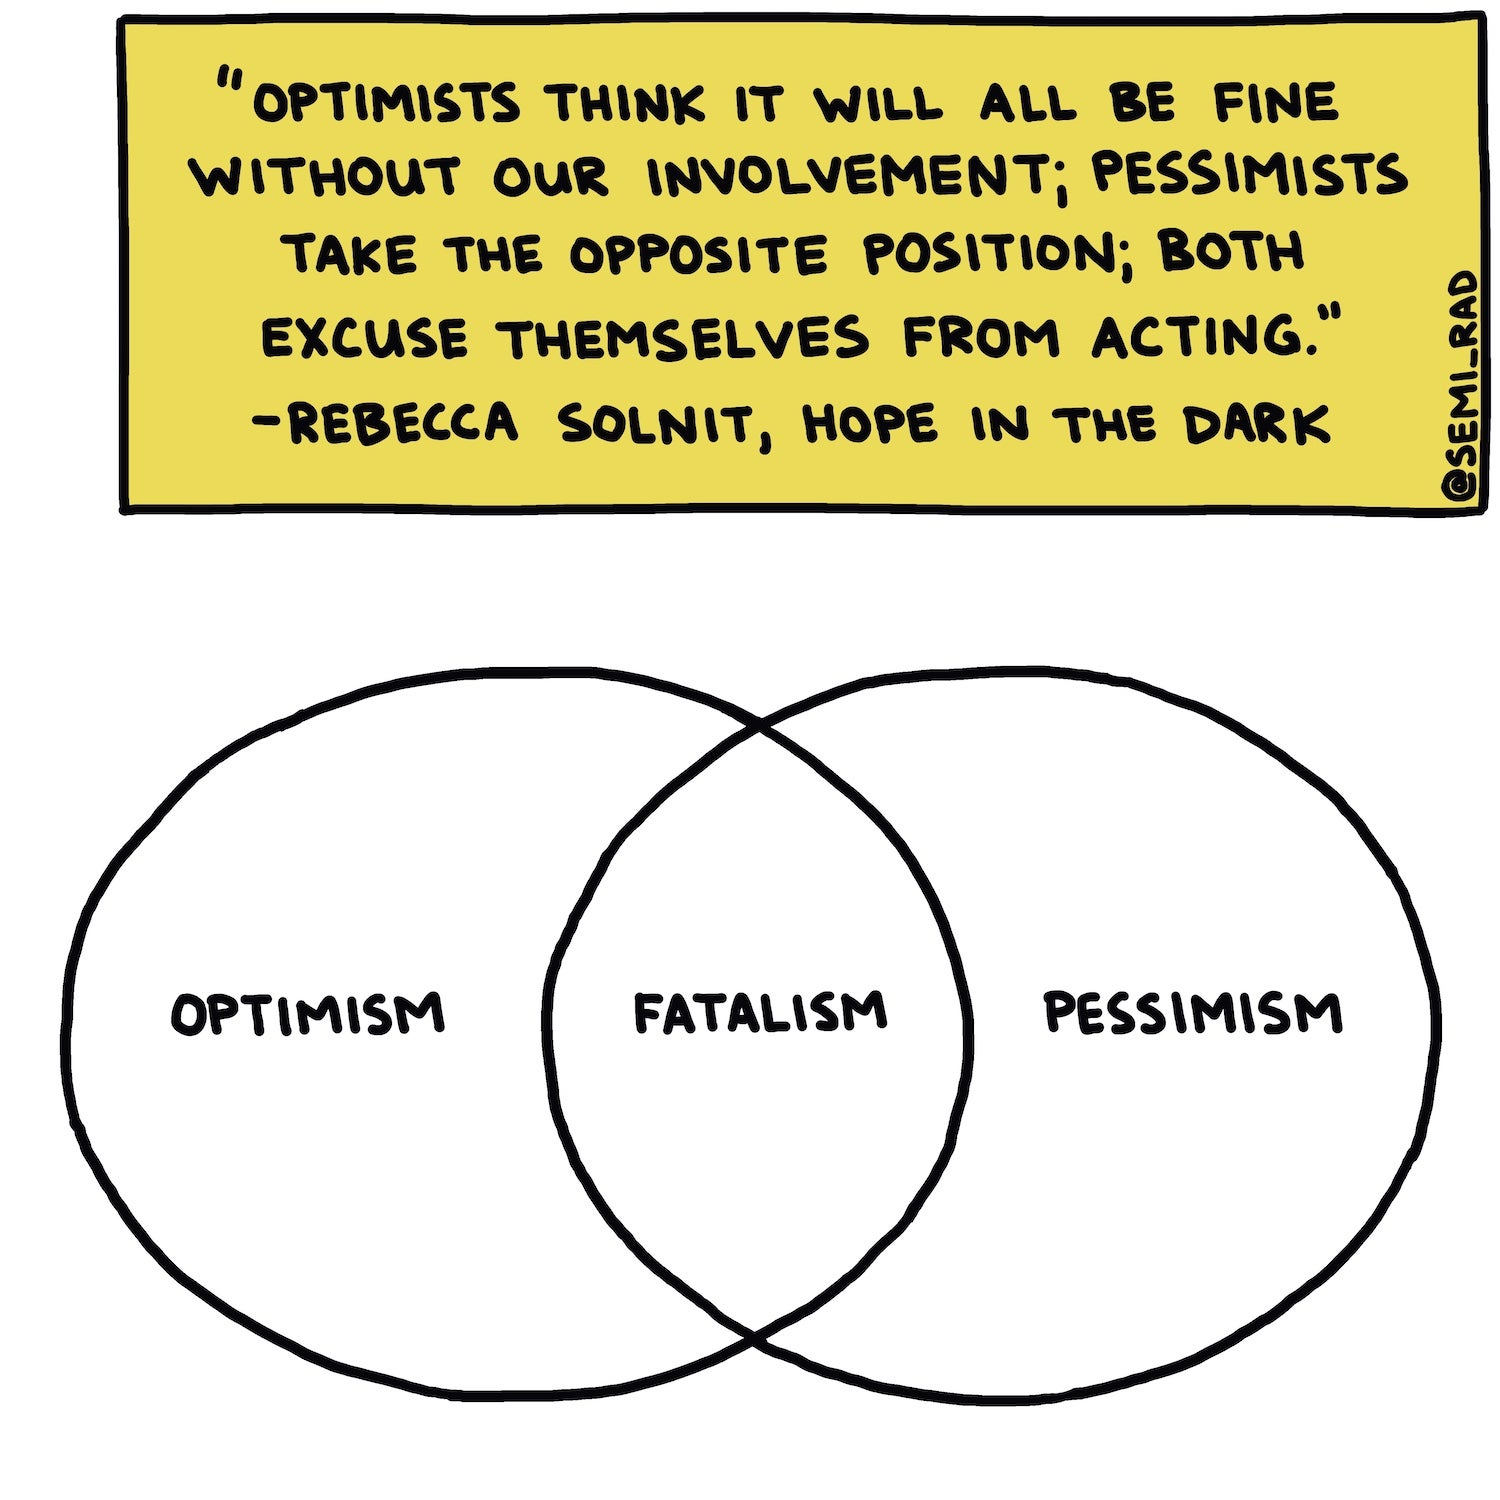 graph showing how optimism and pessimism create fatalism with Rebecca Solnit quote